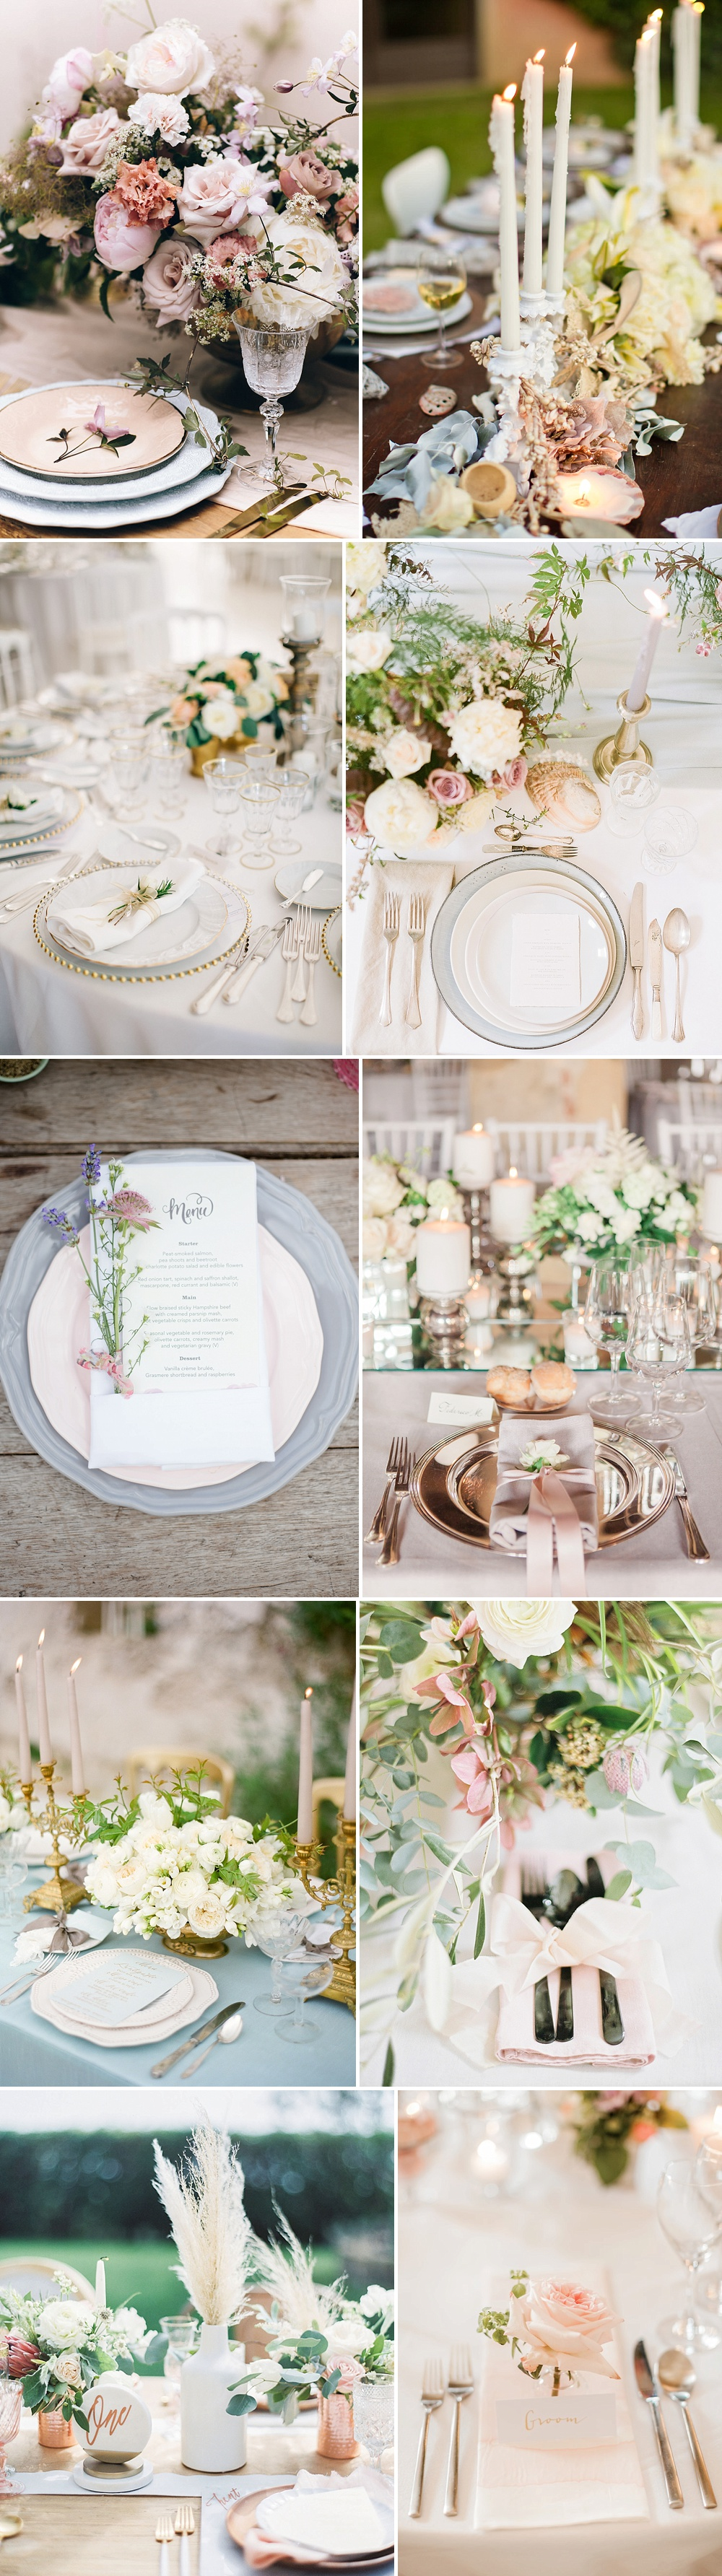 Place Settings For Weddings With A Pastel & Metallic Colour Palette